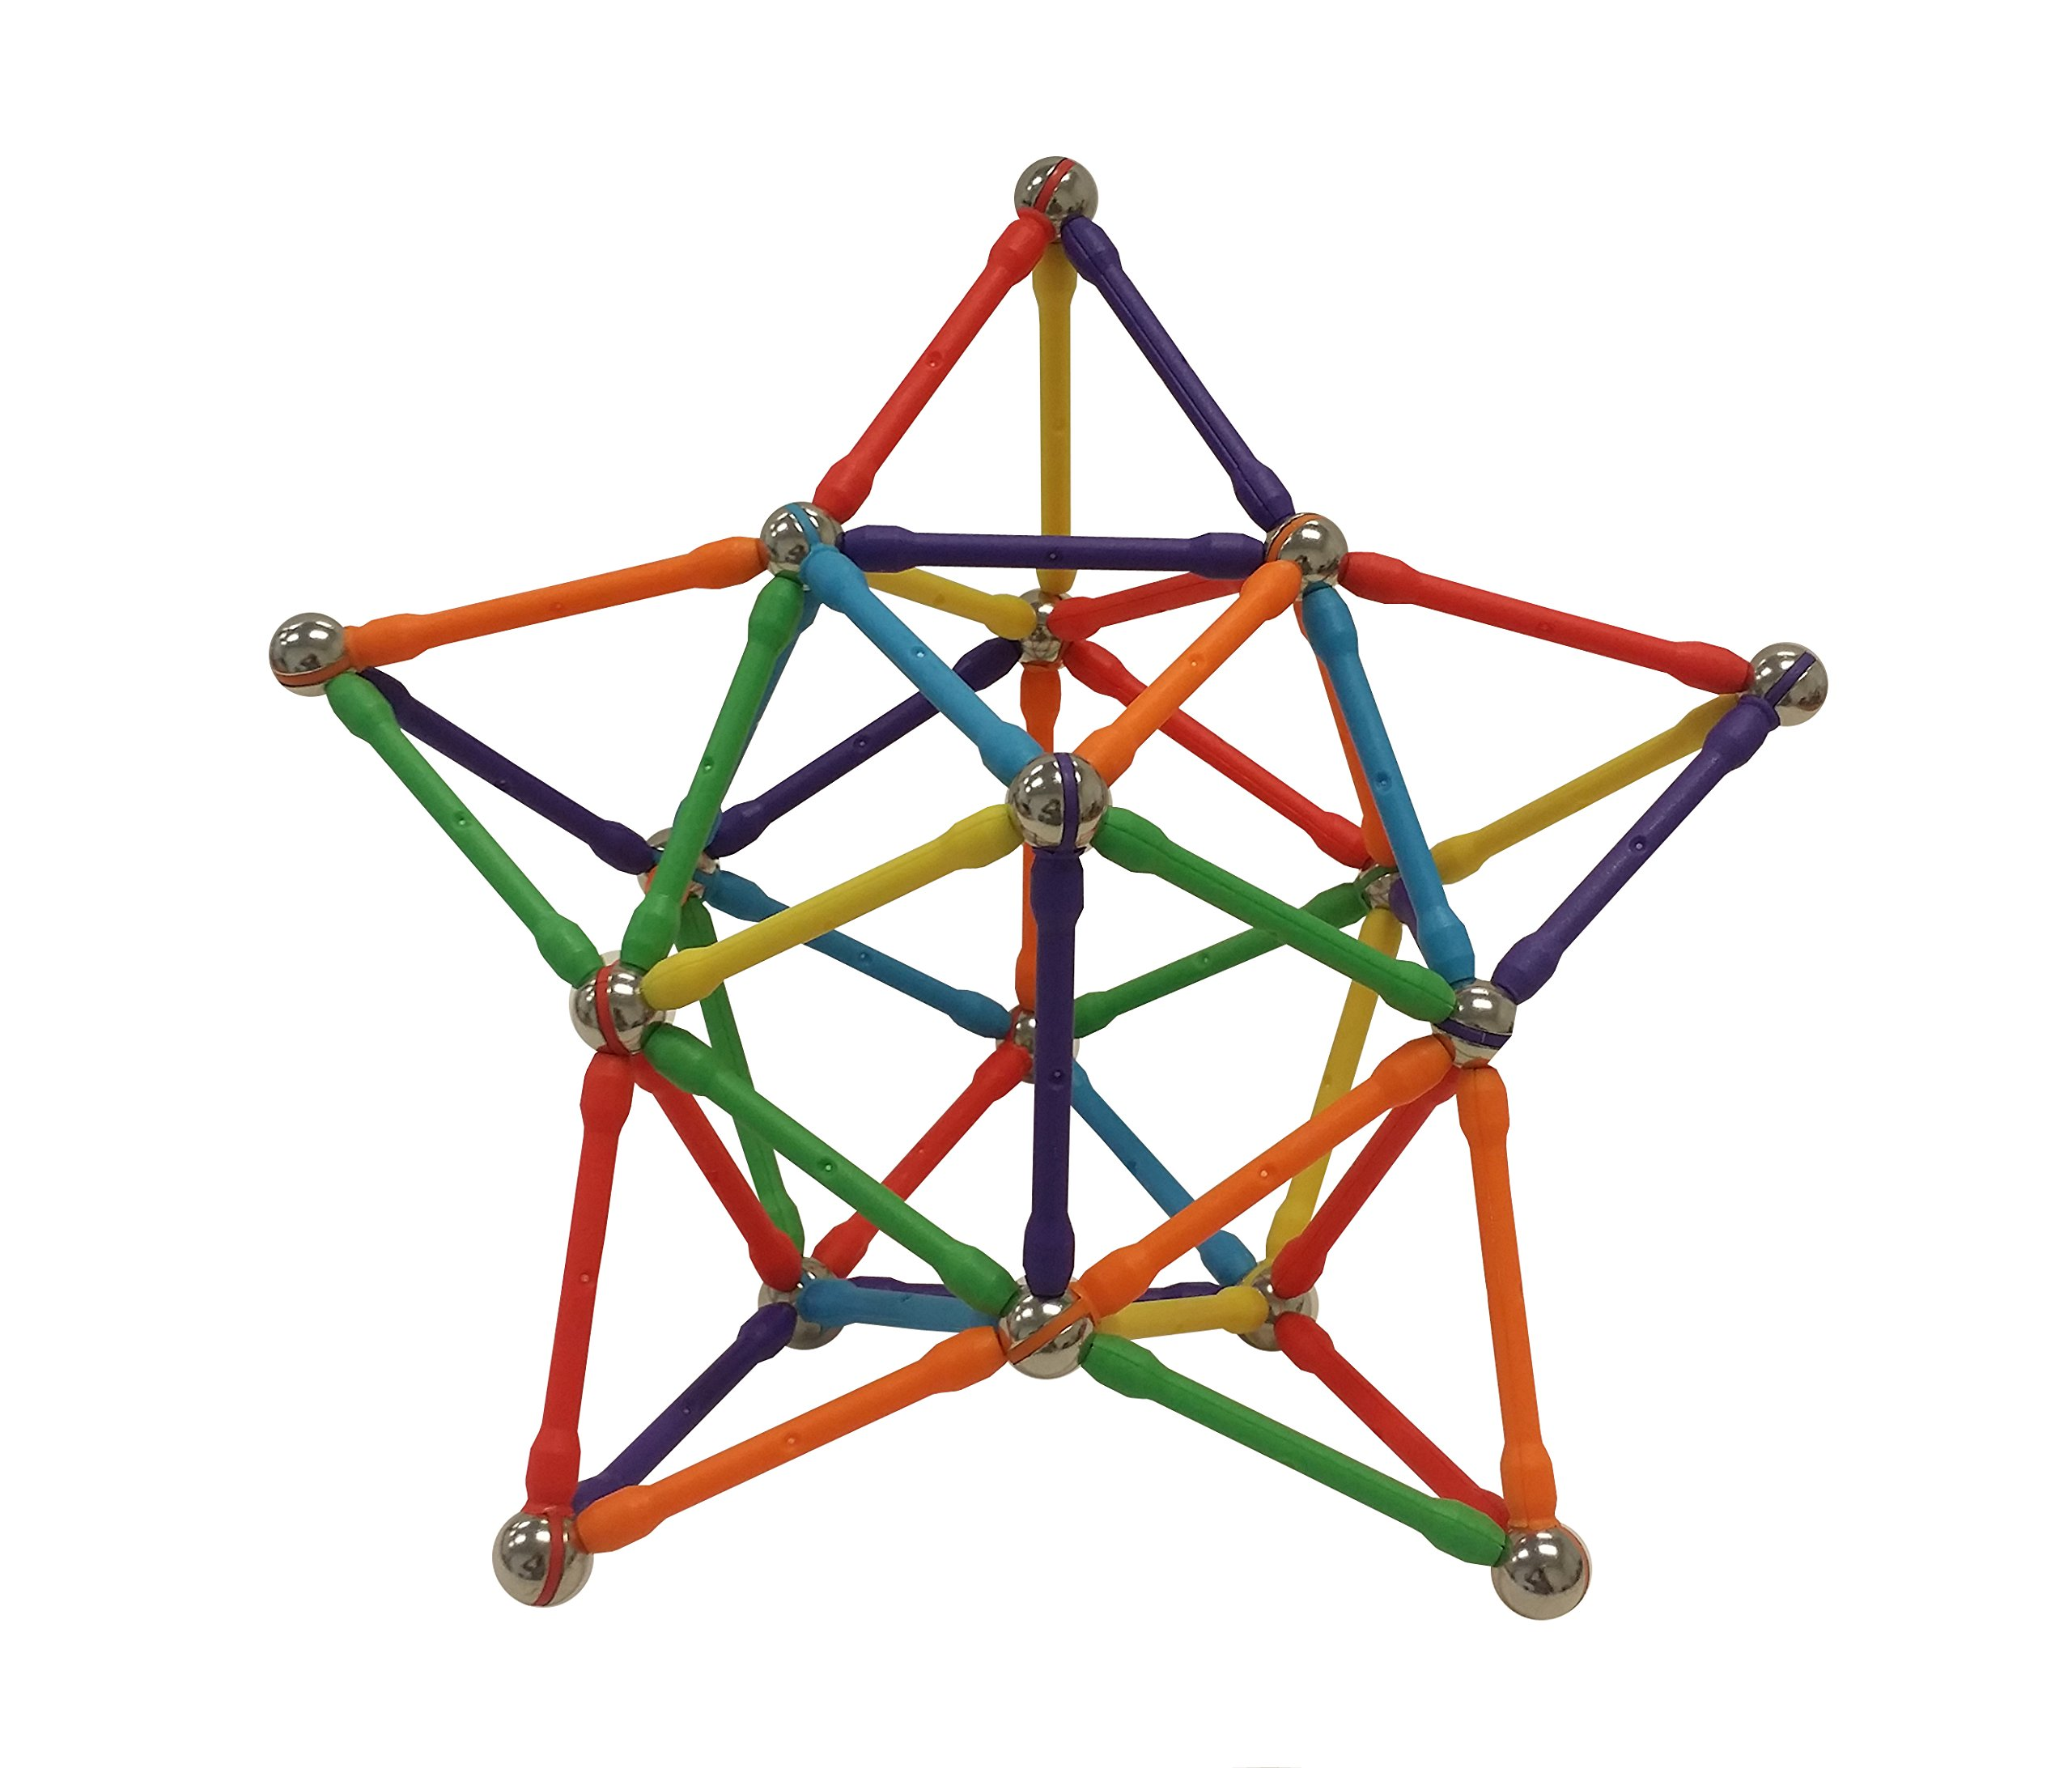 Magziod 96 Magnetic Building Set With No Loose Balls! Offered Exclusively By .. 12